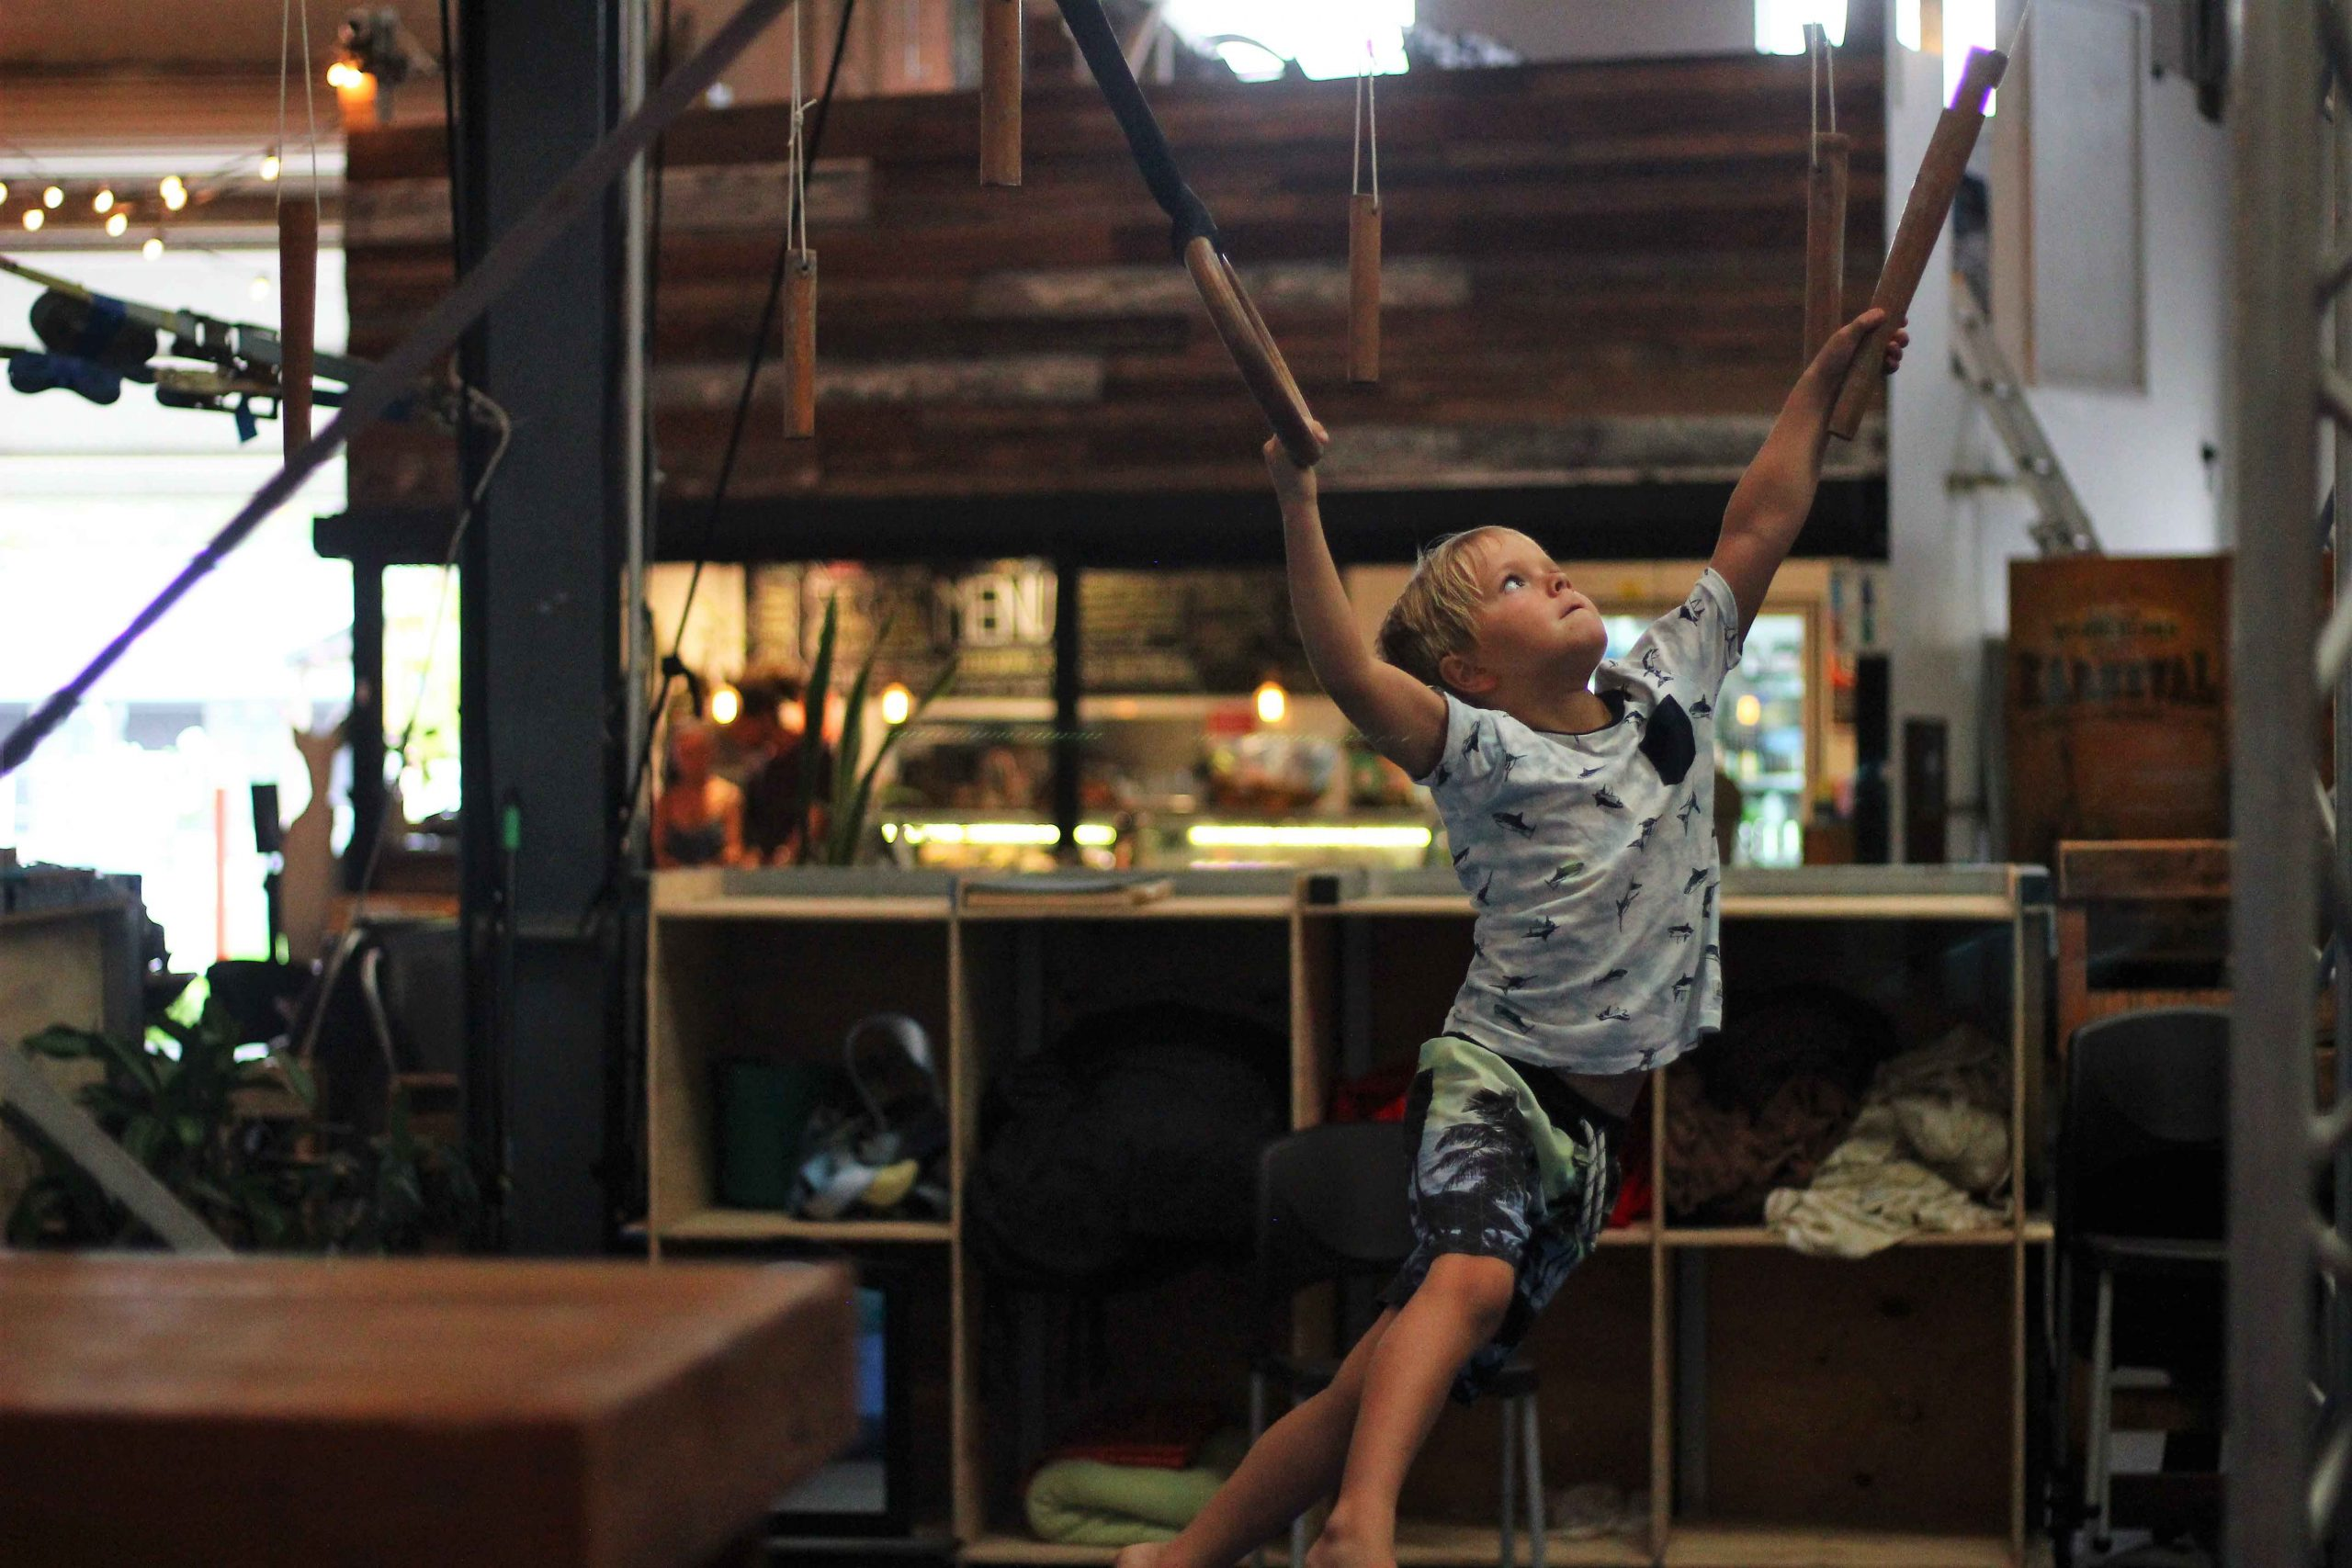 circus-arts-byron-bay-kids-teens-classes-ninja-parkour-2